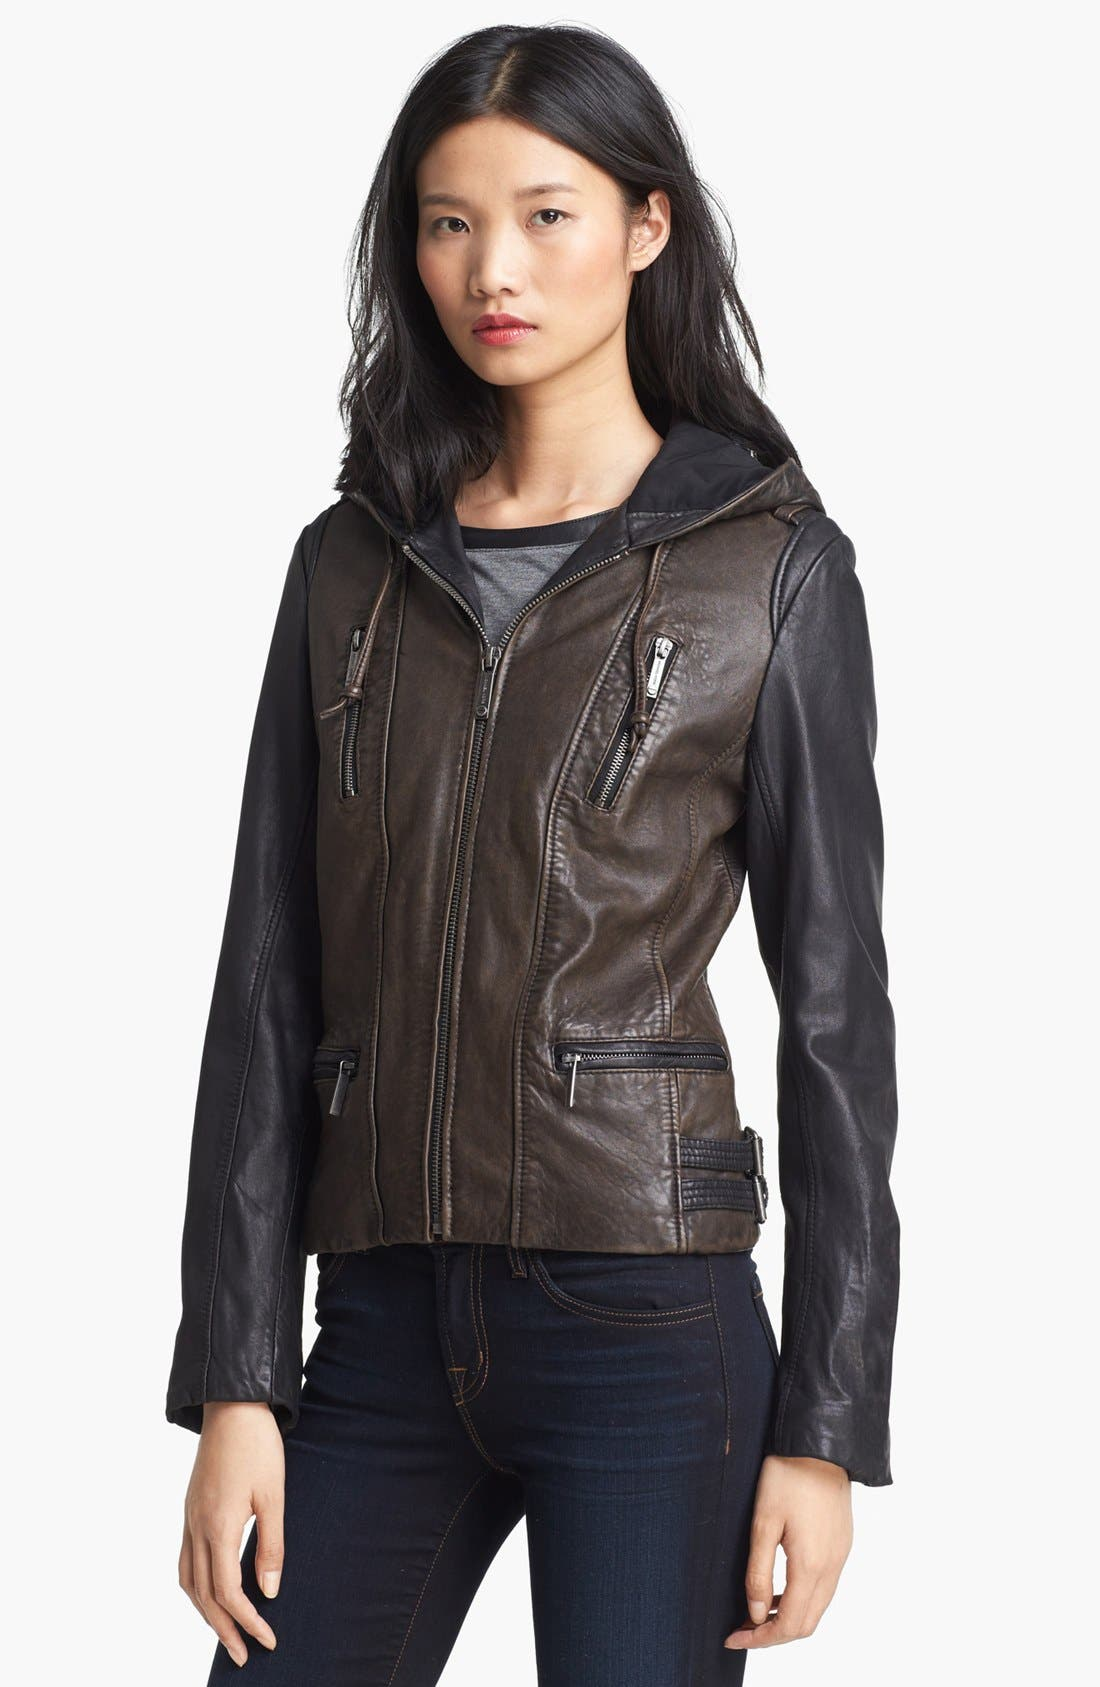 Alternate Image 1 Selected - MICHAEL Michael Kors Hooded Colorblock Leather Jacket (Nordstrom Exclusive)